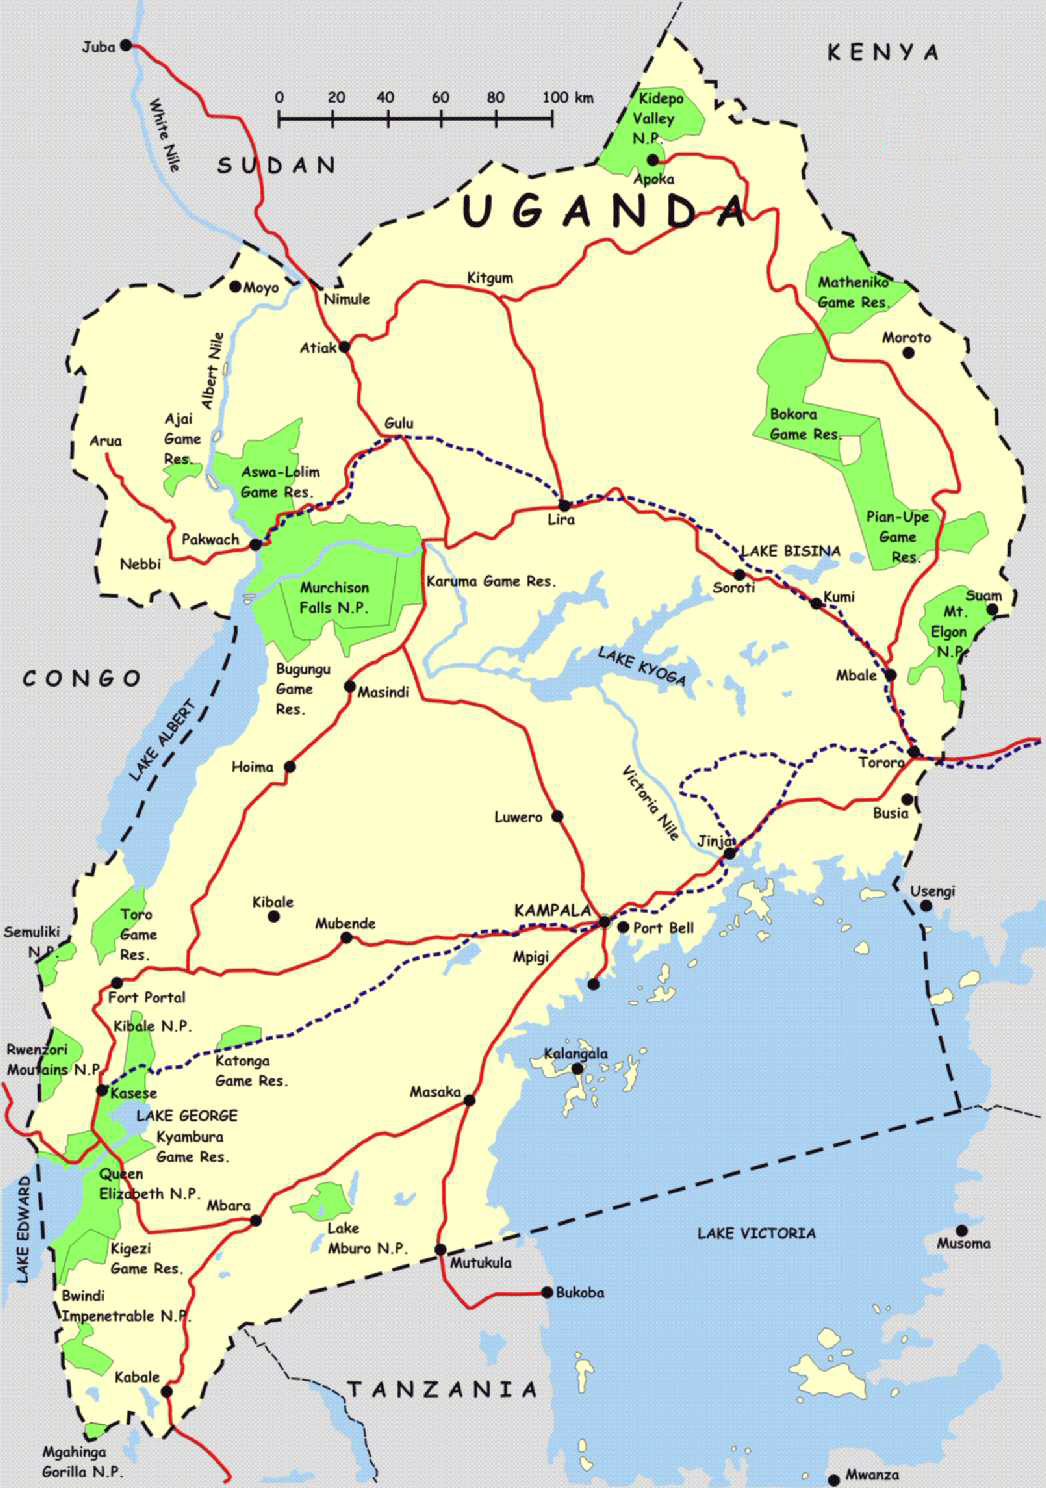 Detailed highways map of Uganda. Uganda detailed highways map ...